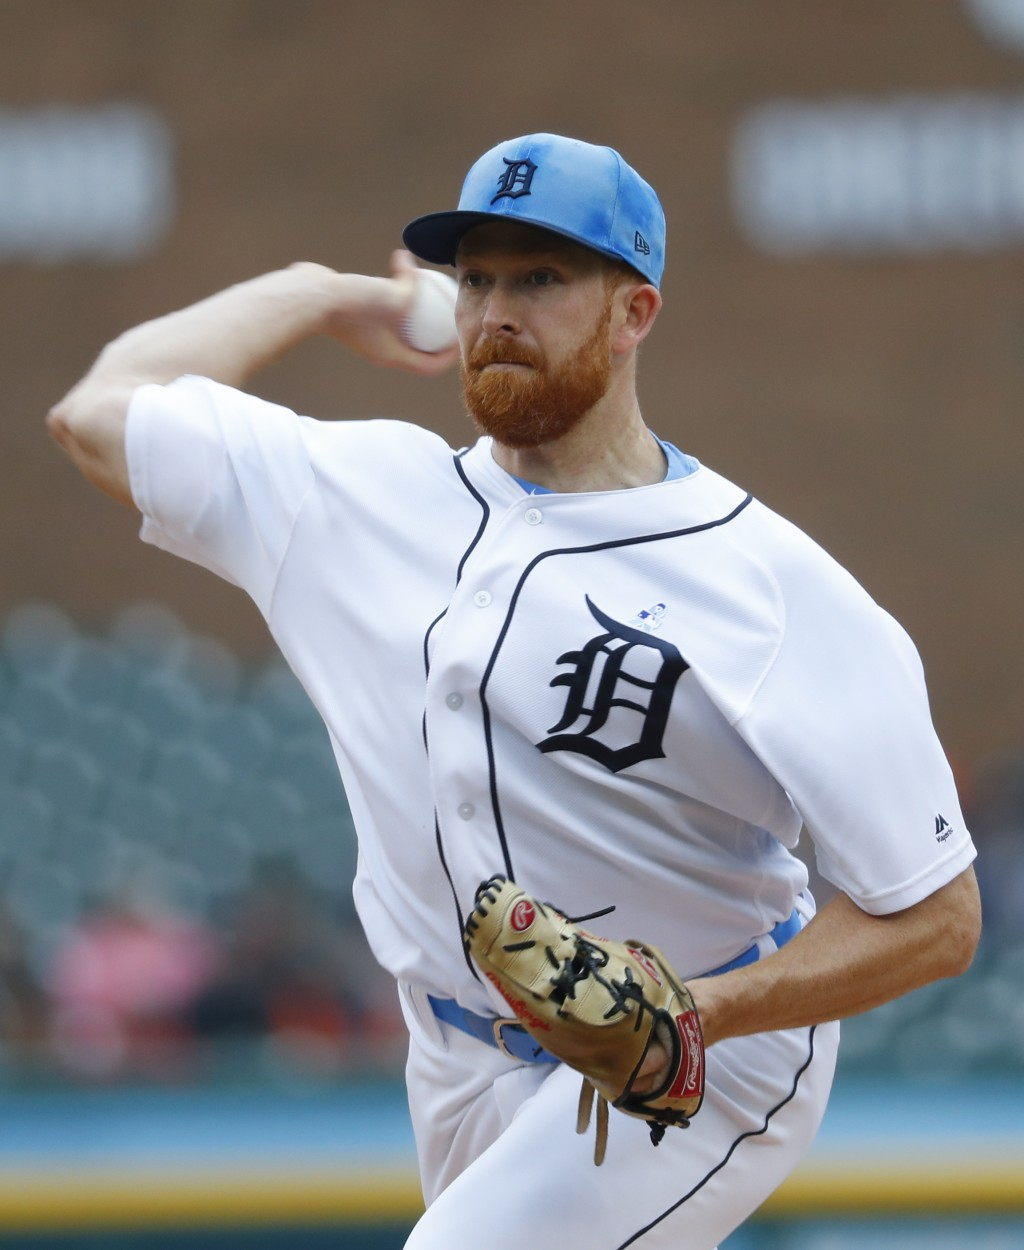 Detroit Tigers pitcher Spencer Turnbull throws against Cleveland Indians in the first inning of a baseball game in Detroit, Sunday, June 16, 2019. (AP